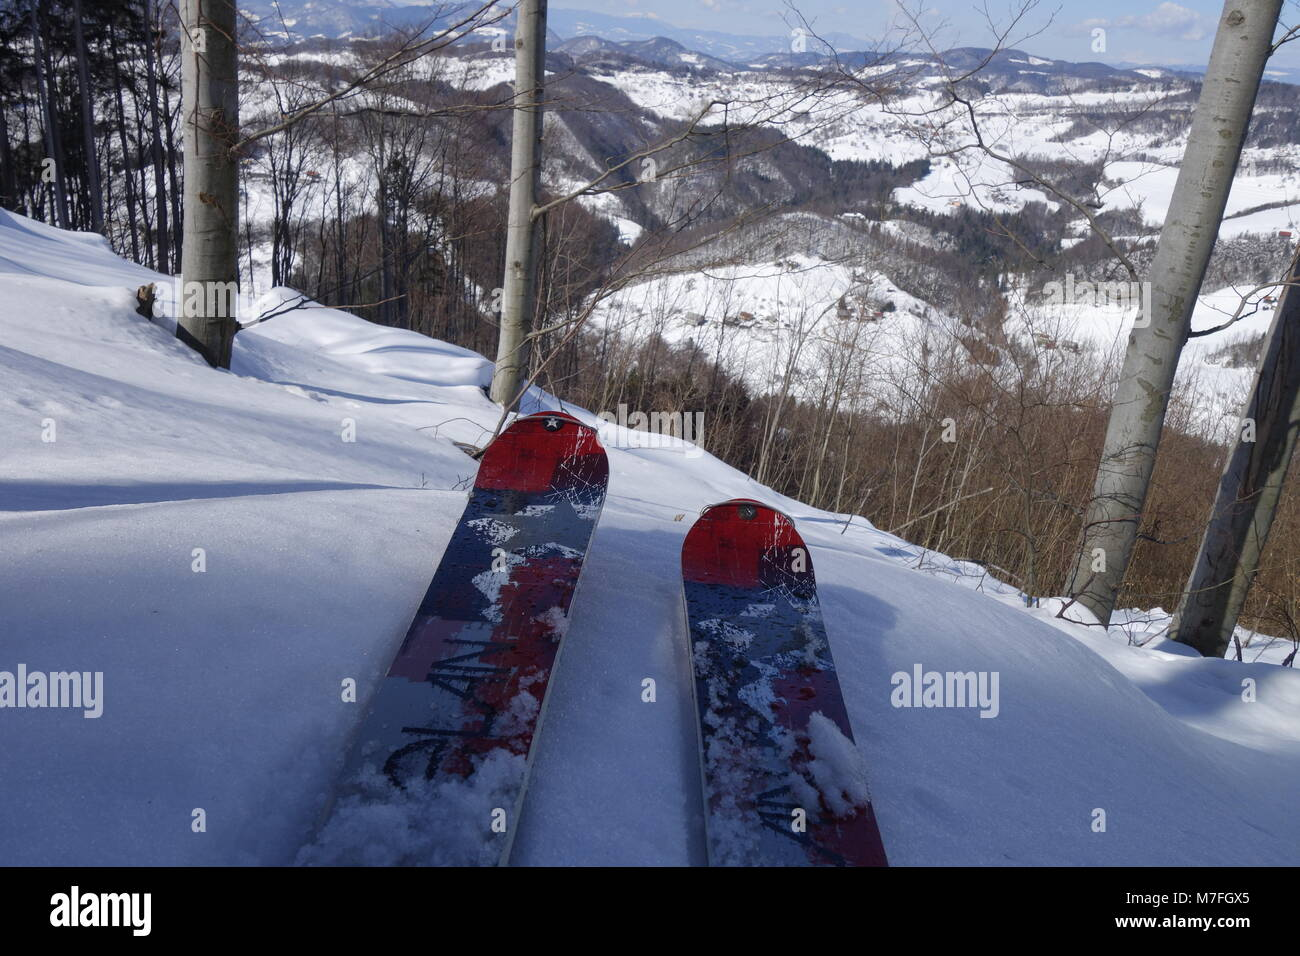 A pair of touring skis in woods turned downhill ready for off-piste ride. - Stock Image